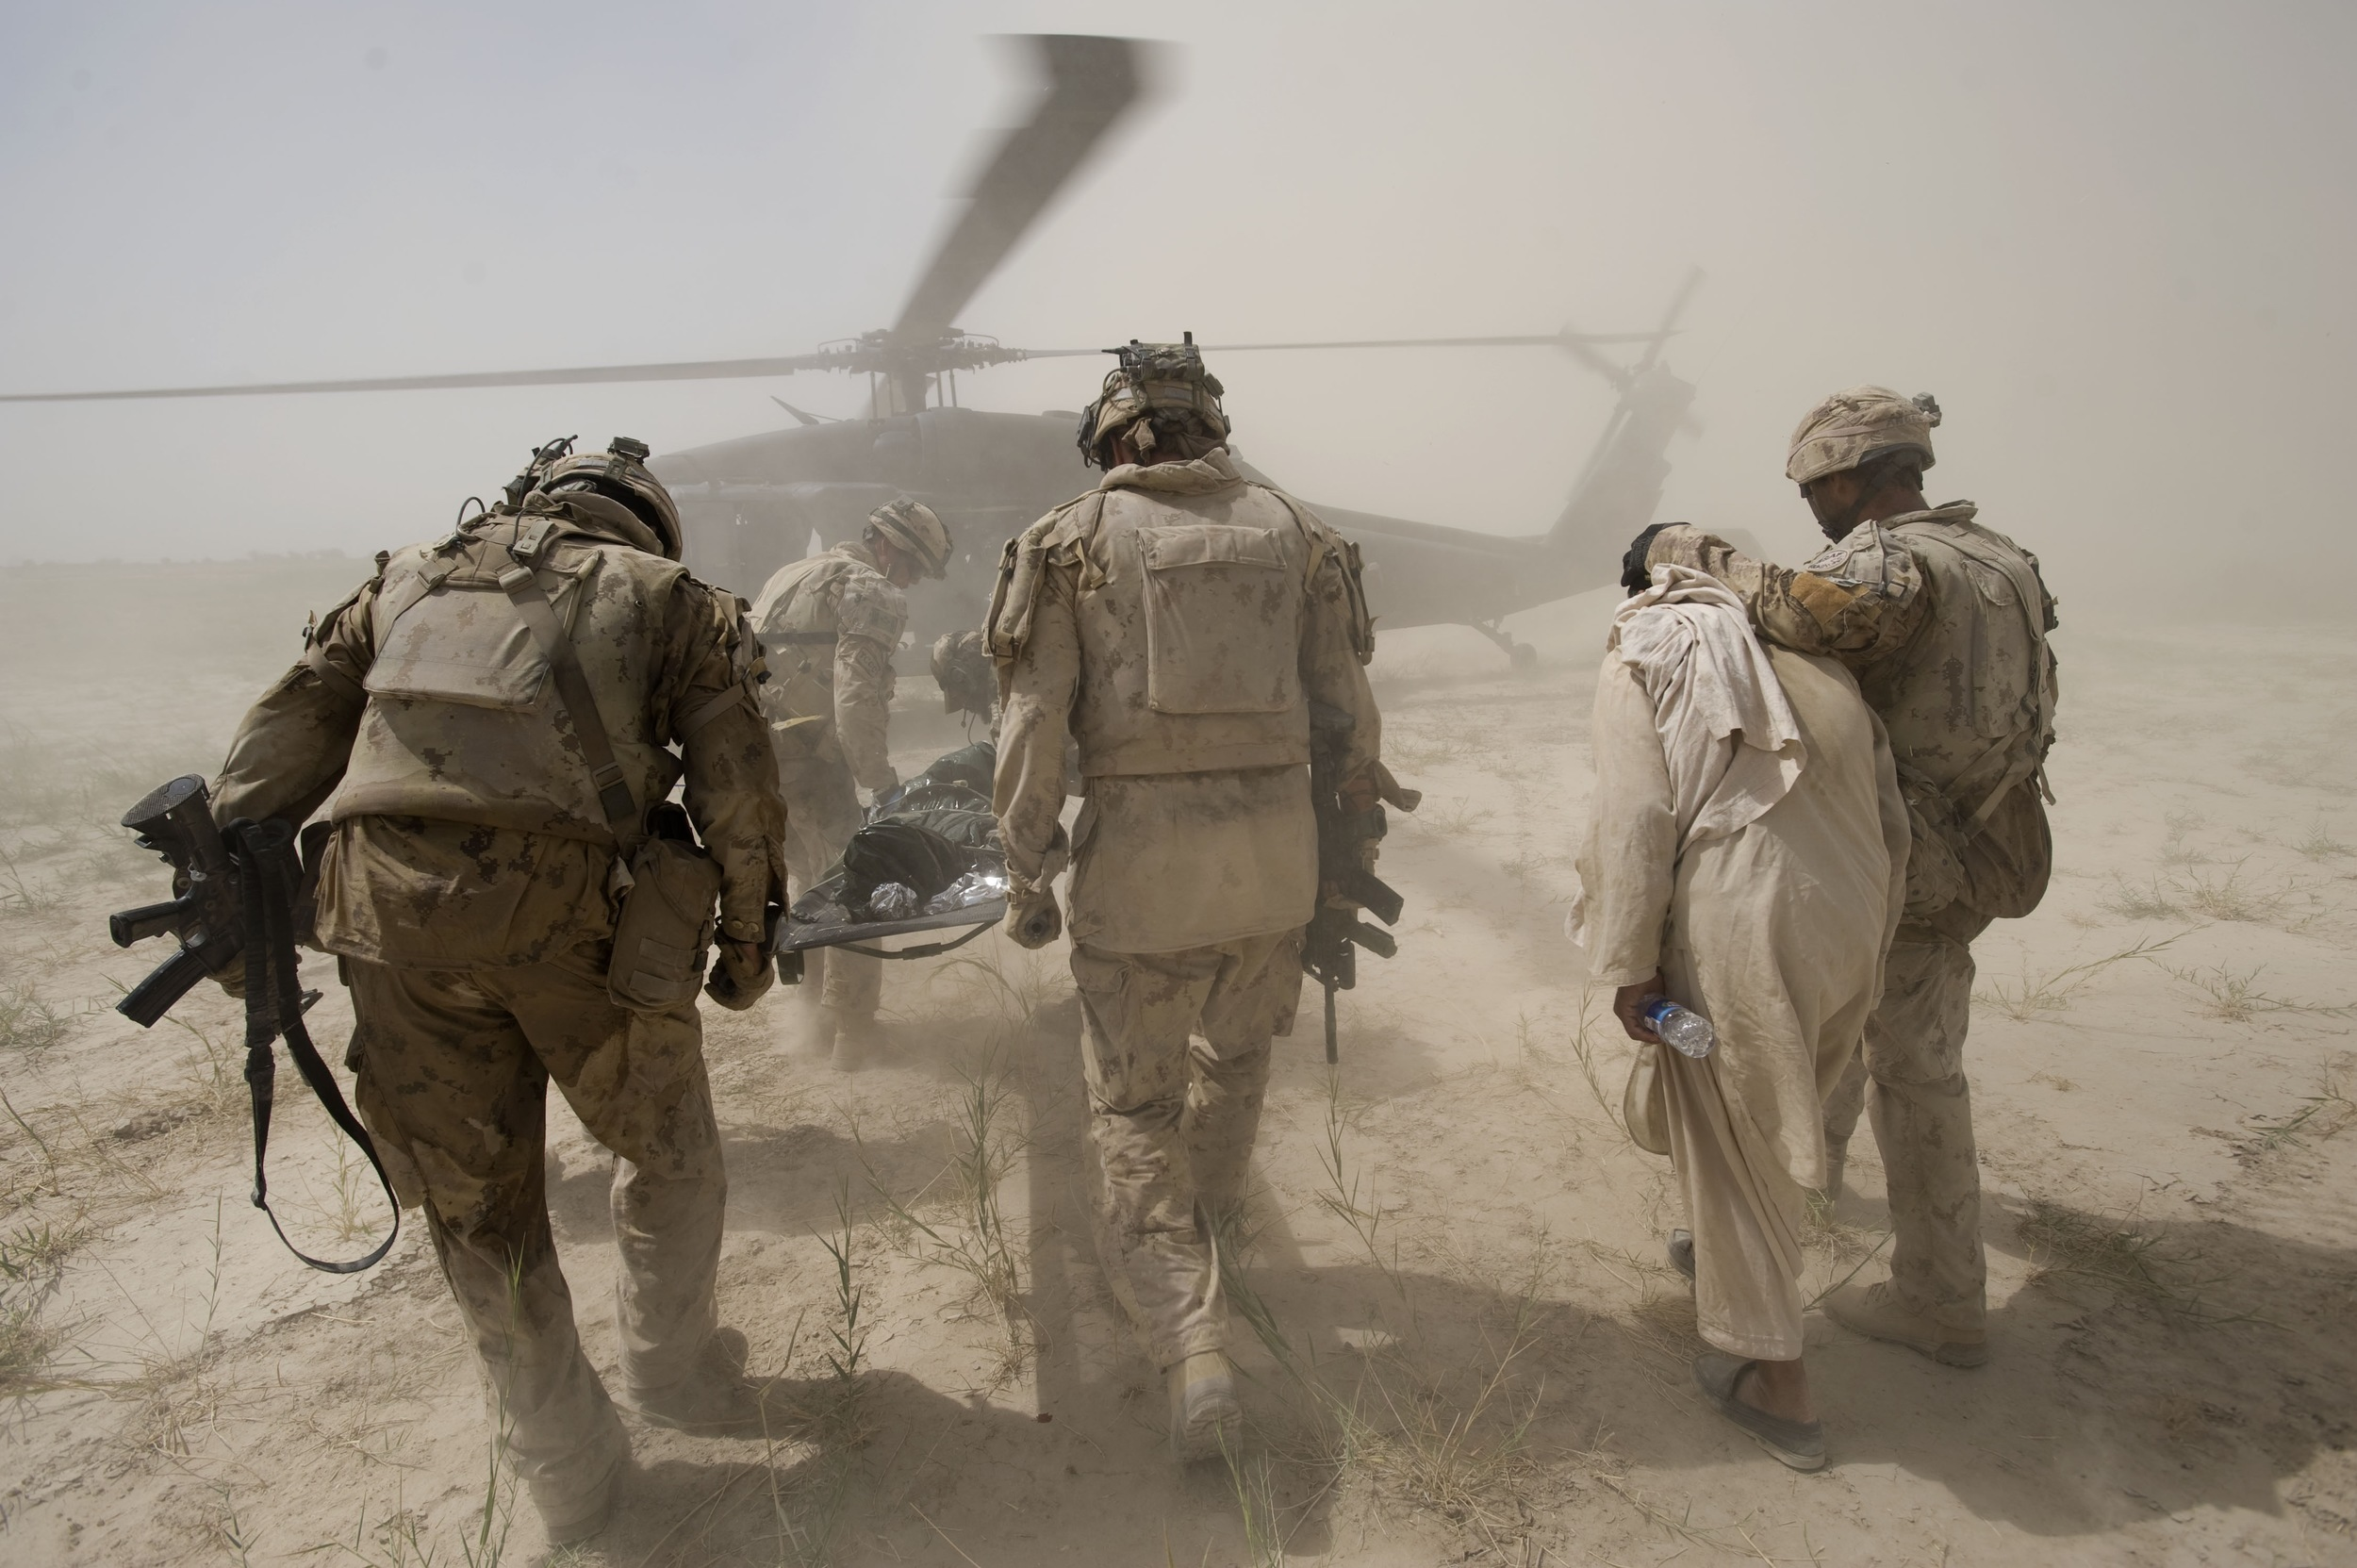 Canadian soldiers carry a critically wounded 8-year-old Afghan boy on a stretcher and escort his relative who will accompany him to a medevac helicopter after he was critically injured by an Improvised Explosive Device (IED) set by Taliban insurgents looking to target Canadian troops on patrol in the village of Fathullah in Panjwa'i District, Kandahar Province.Jul. 08, 2010 ©Louie Palu/Alexia Foundation/ZUMAPRESS.com